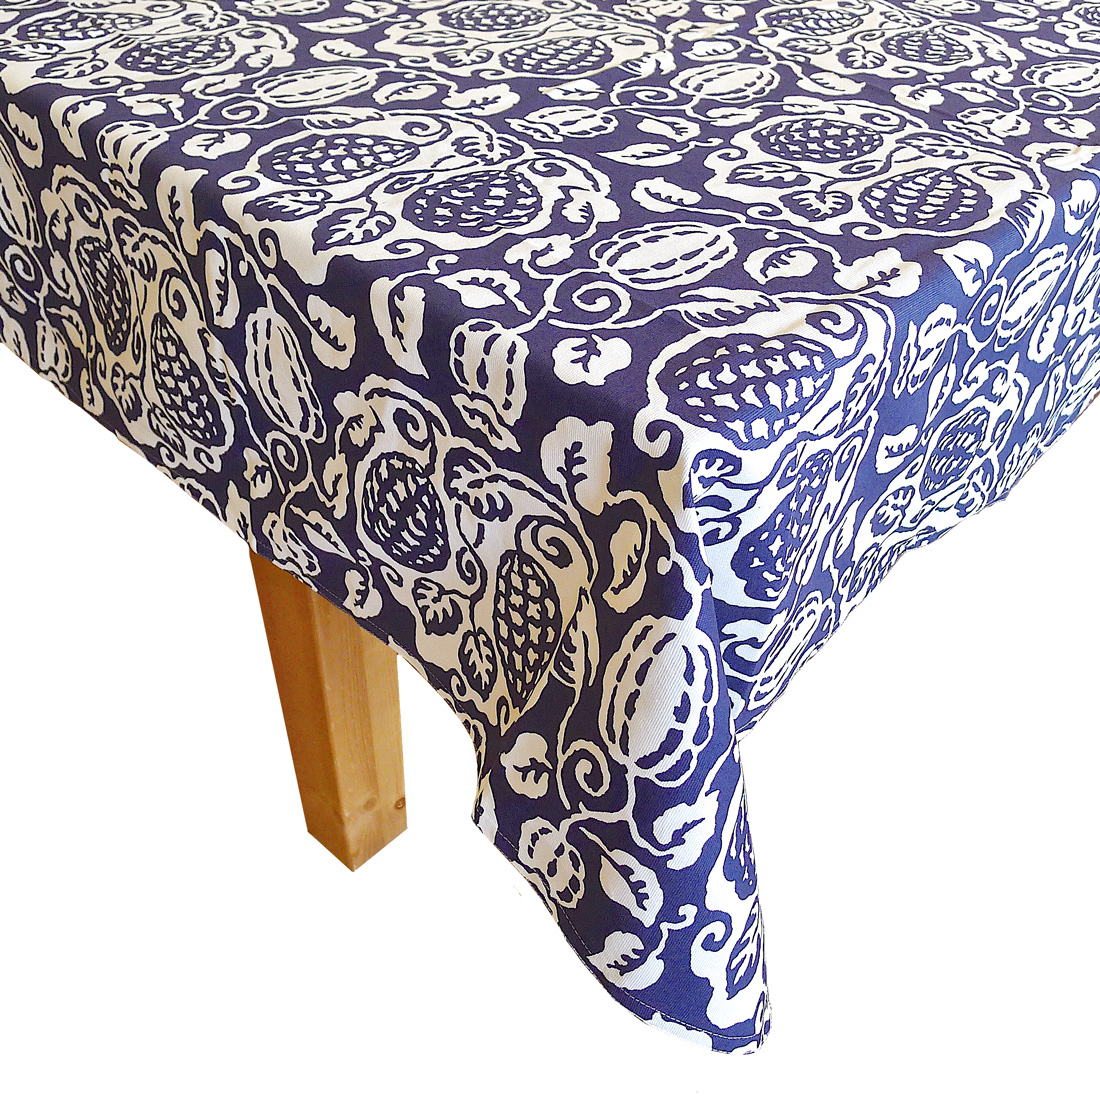 Image of Indigo Poppy Tablecloth